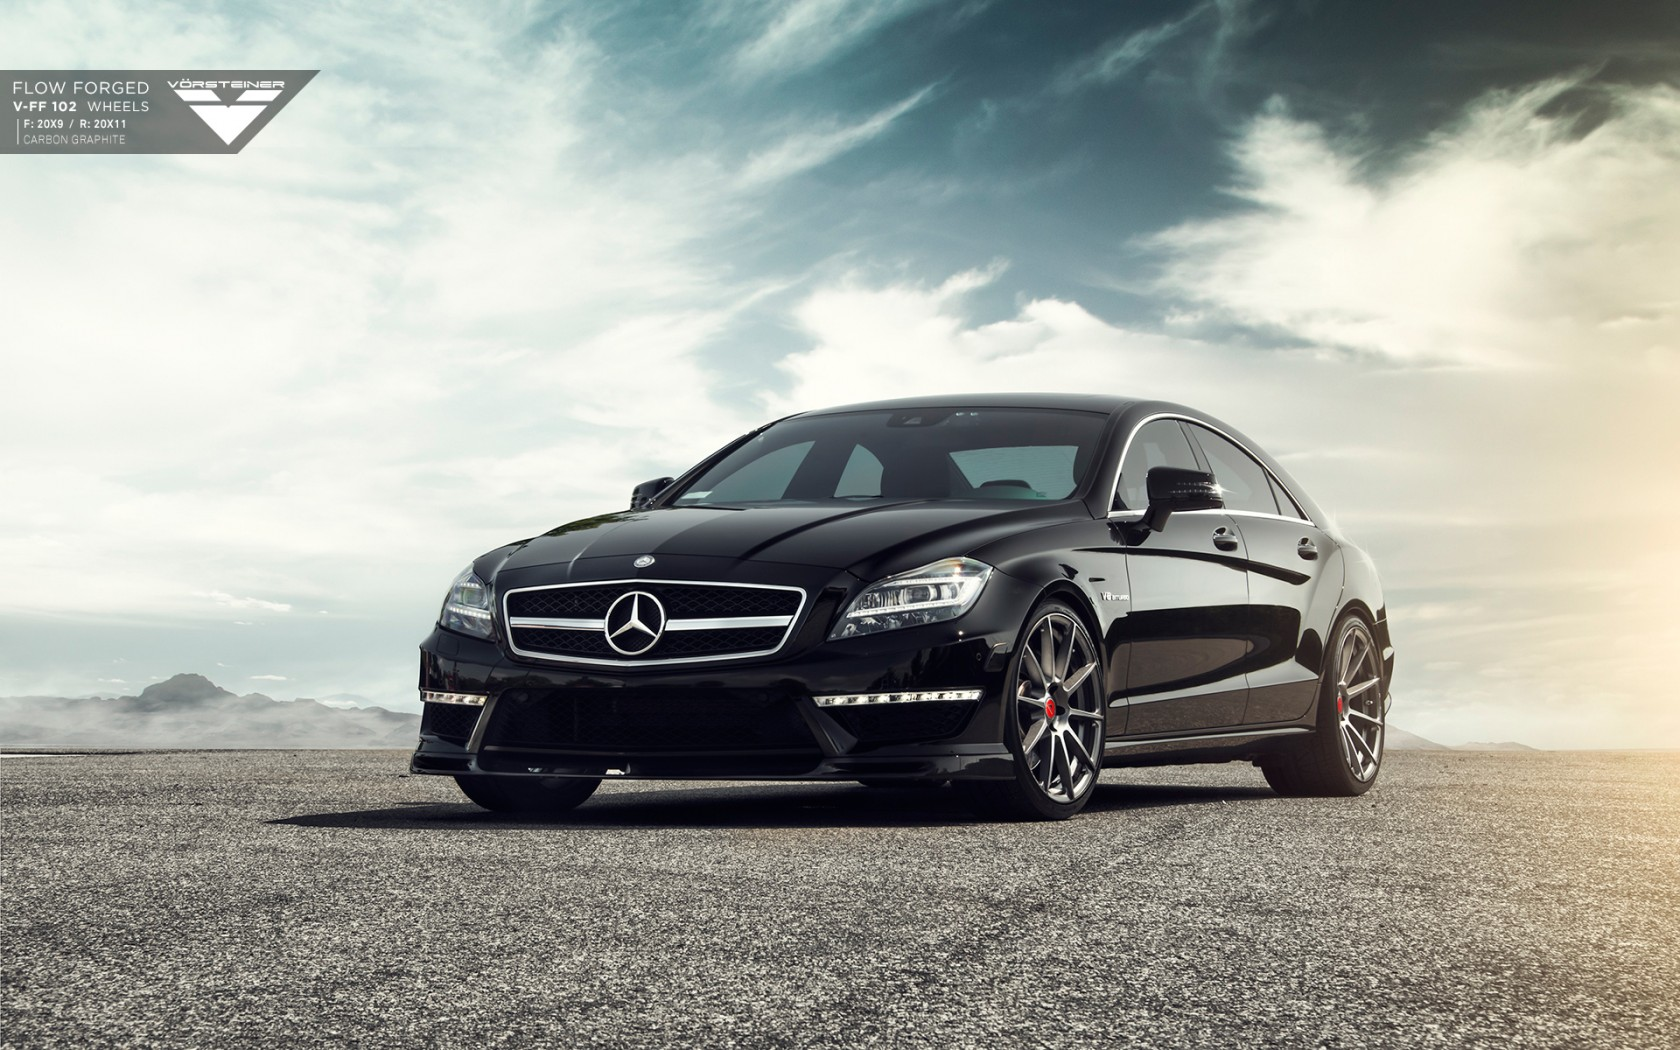 Mercedes Benz Cls63 Amg Vorsteiner Wallpaper Hd Car